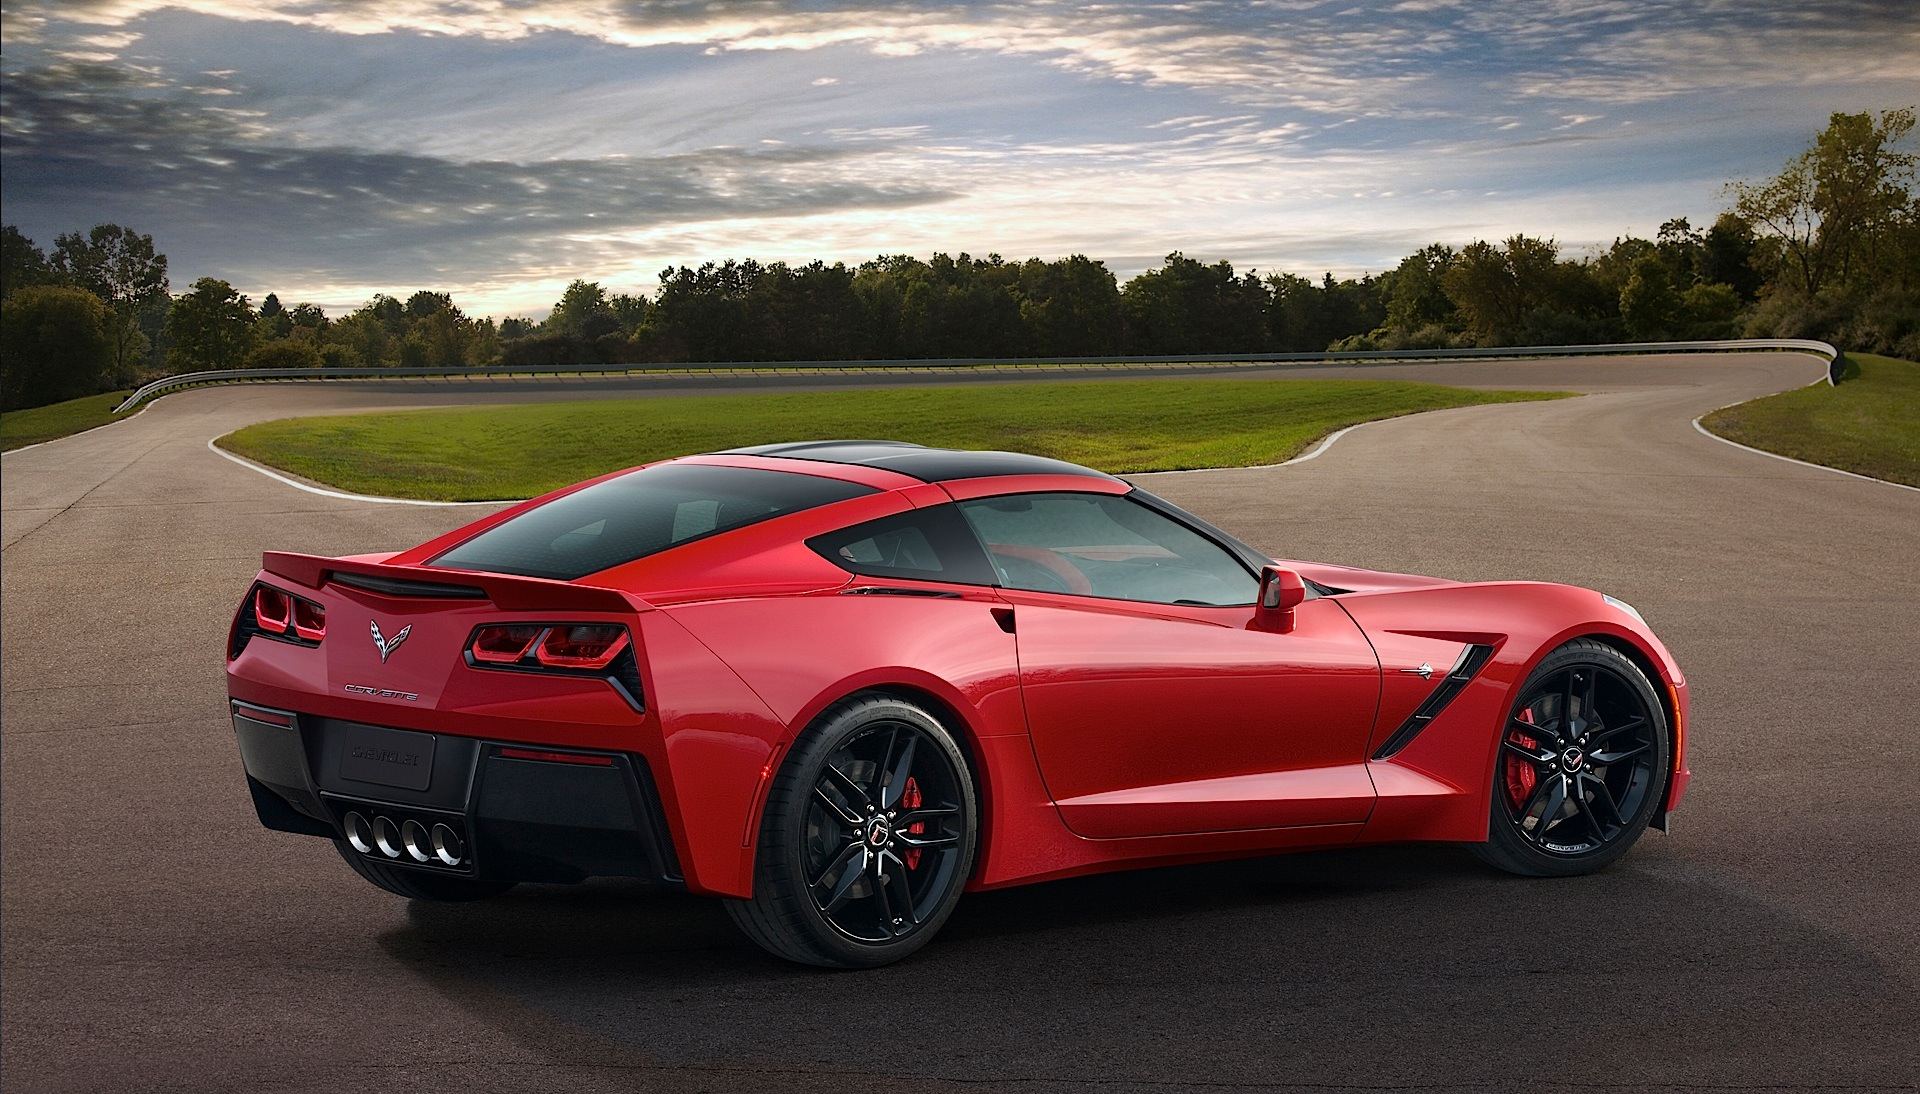 chevrolet corvette stingray c7 specs 2013 2014 2015 2016 2017 2018 autoevolution. Black Bedroom Furniture Sets. Home Design Ideas